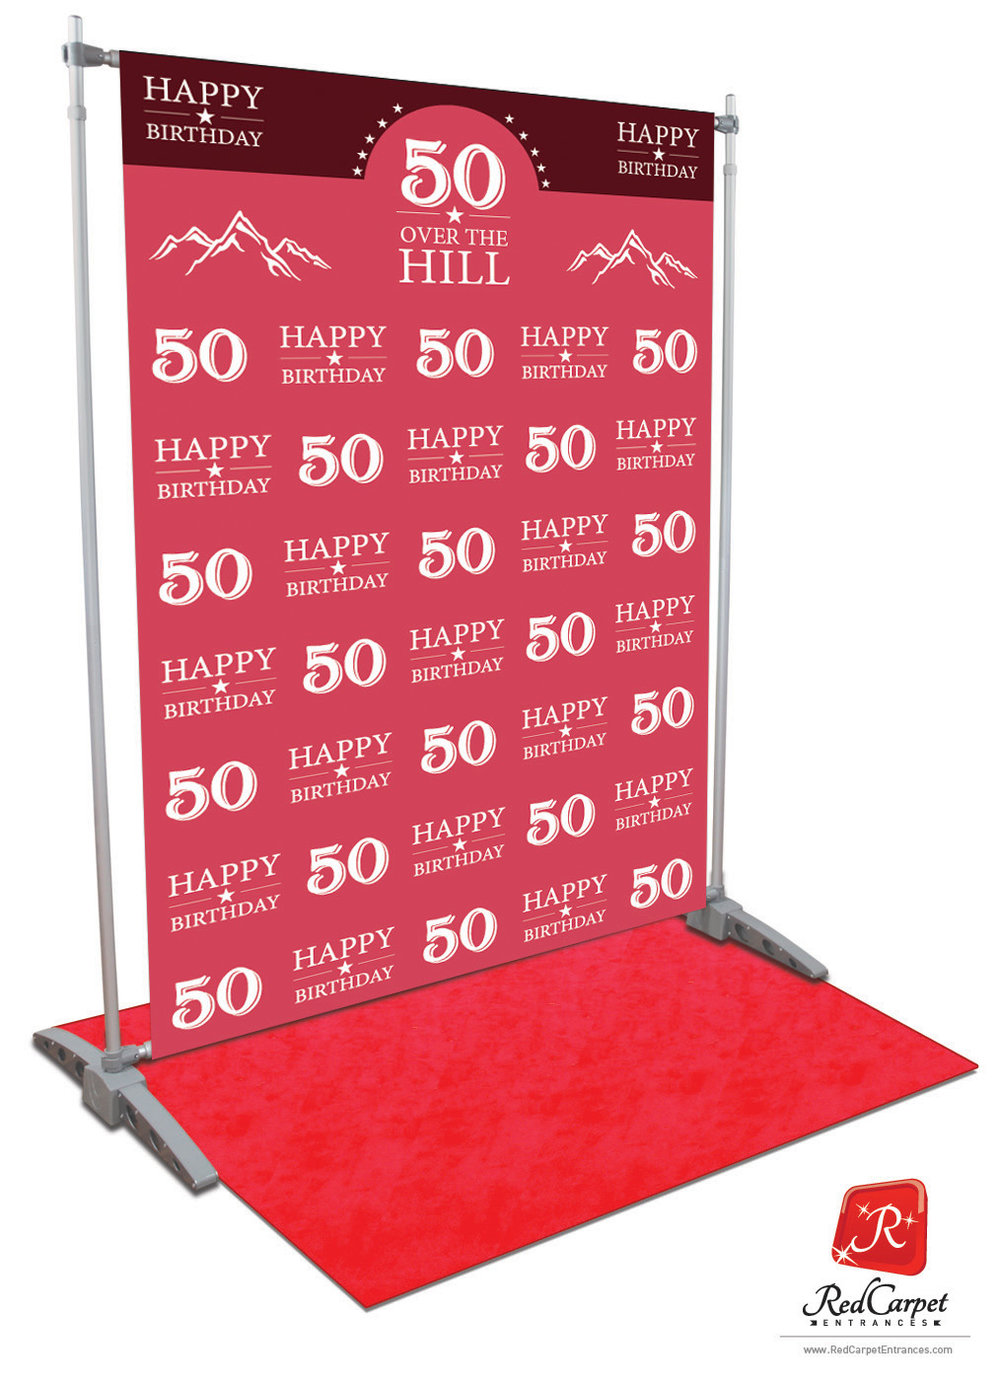 Over The Hill 50th Birthday Backdrop Red Carpet Kit Pink